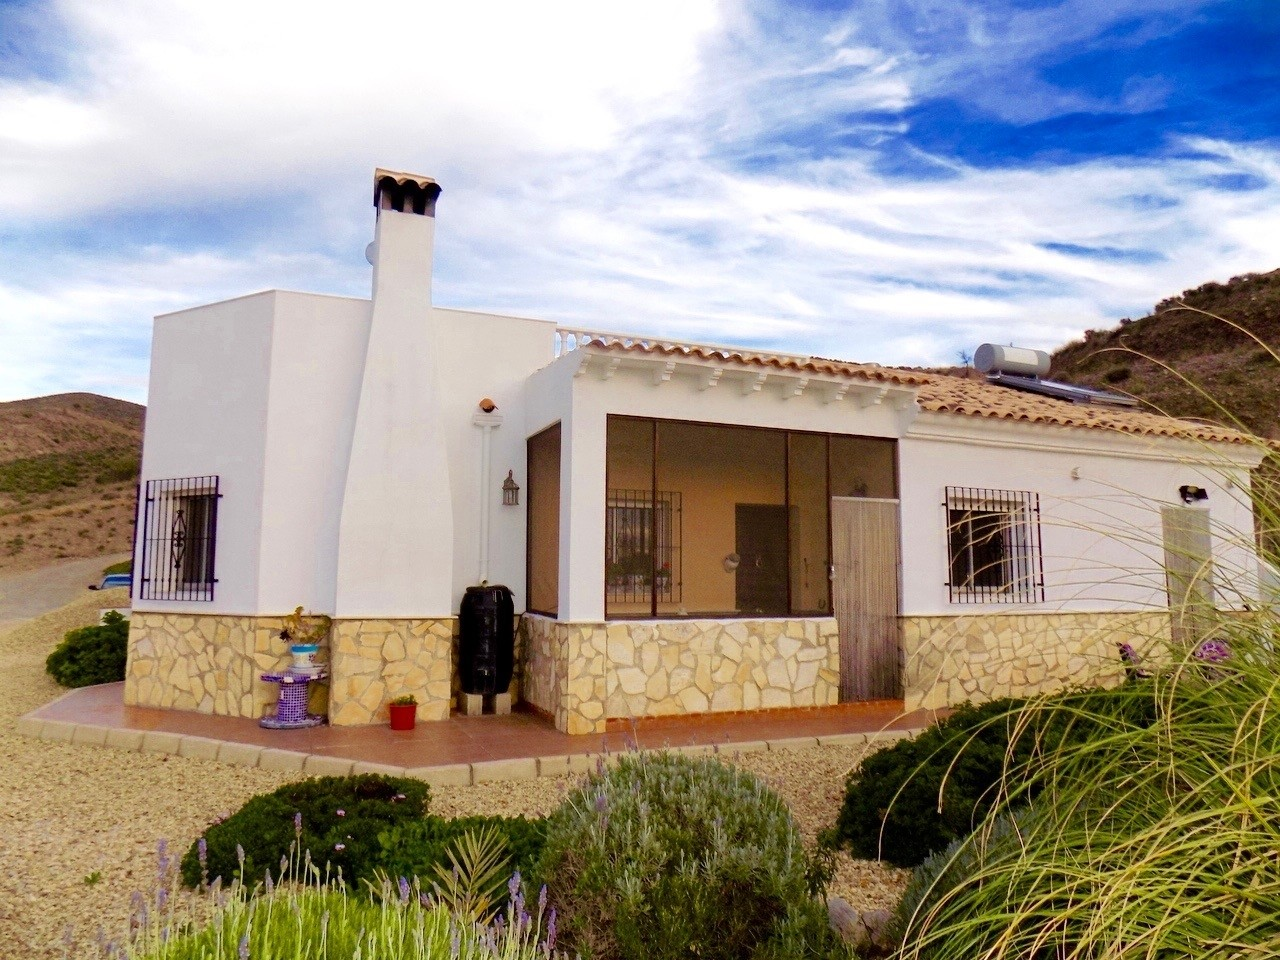 Propery For Sale in Huércal-Overa, Spain image 18